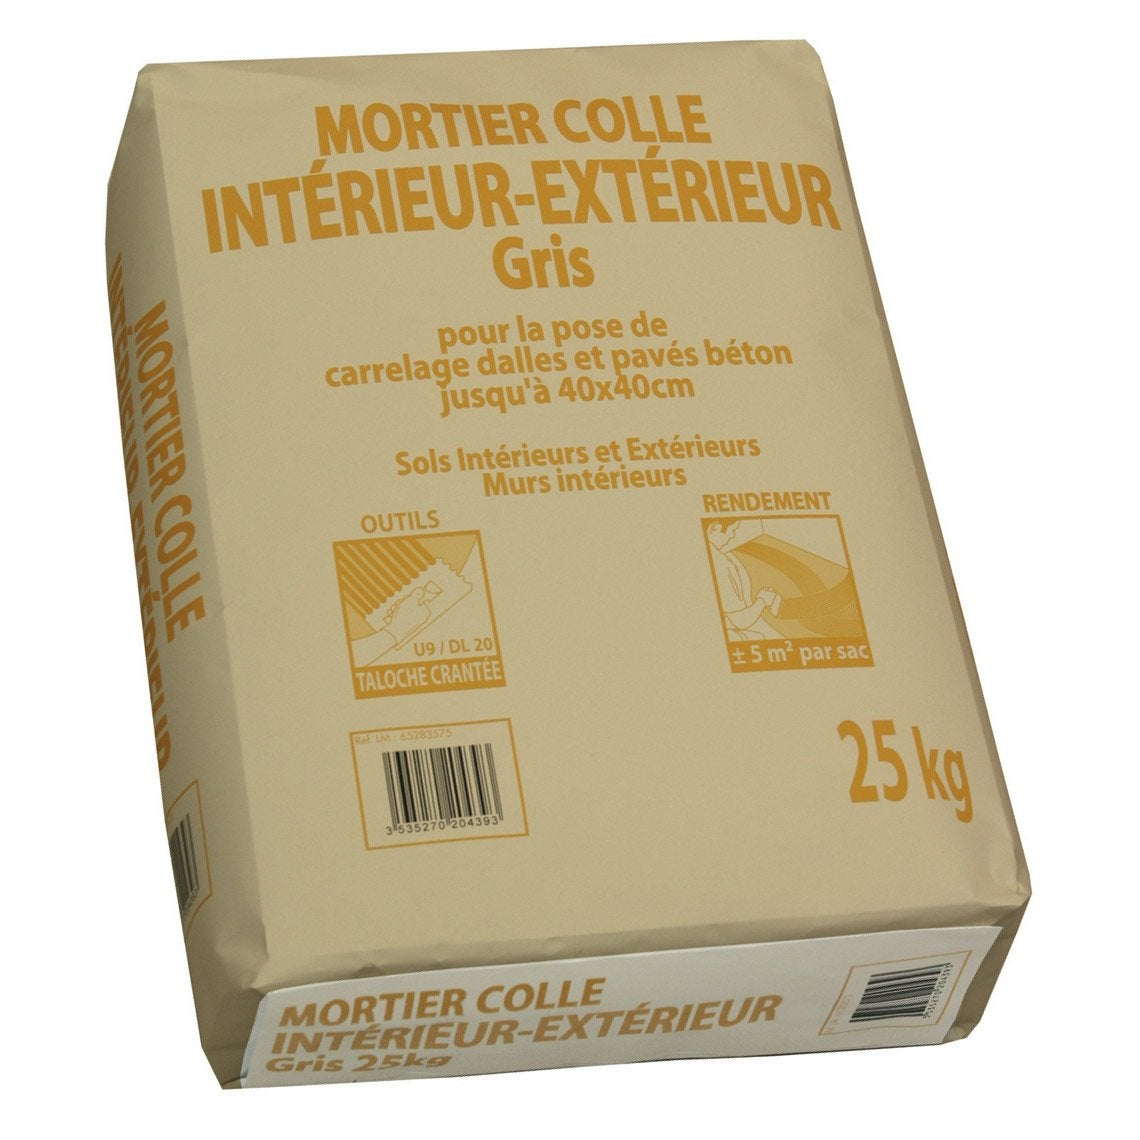 Colle pour carrelage int rieur ext rieur gris prb 25kg for Colle carrelage etanche exterieur